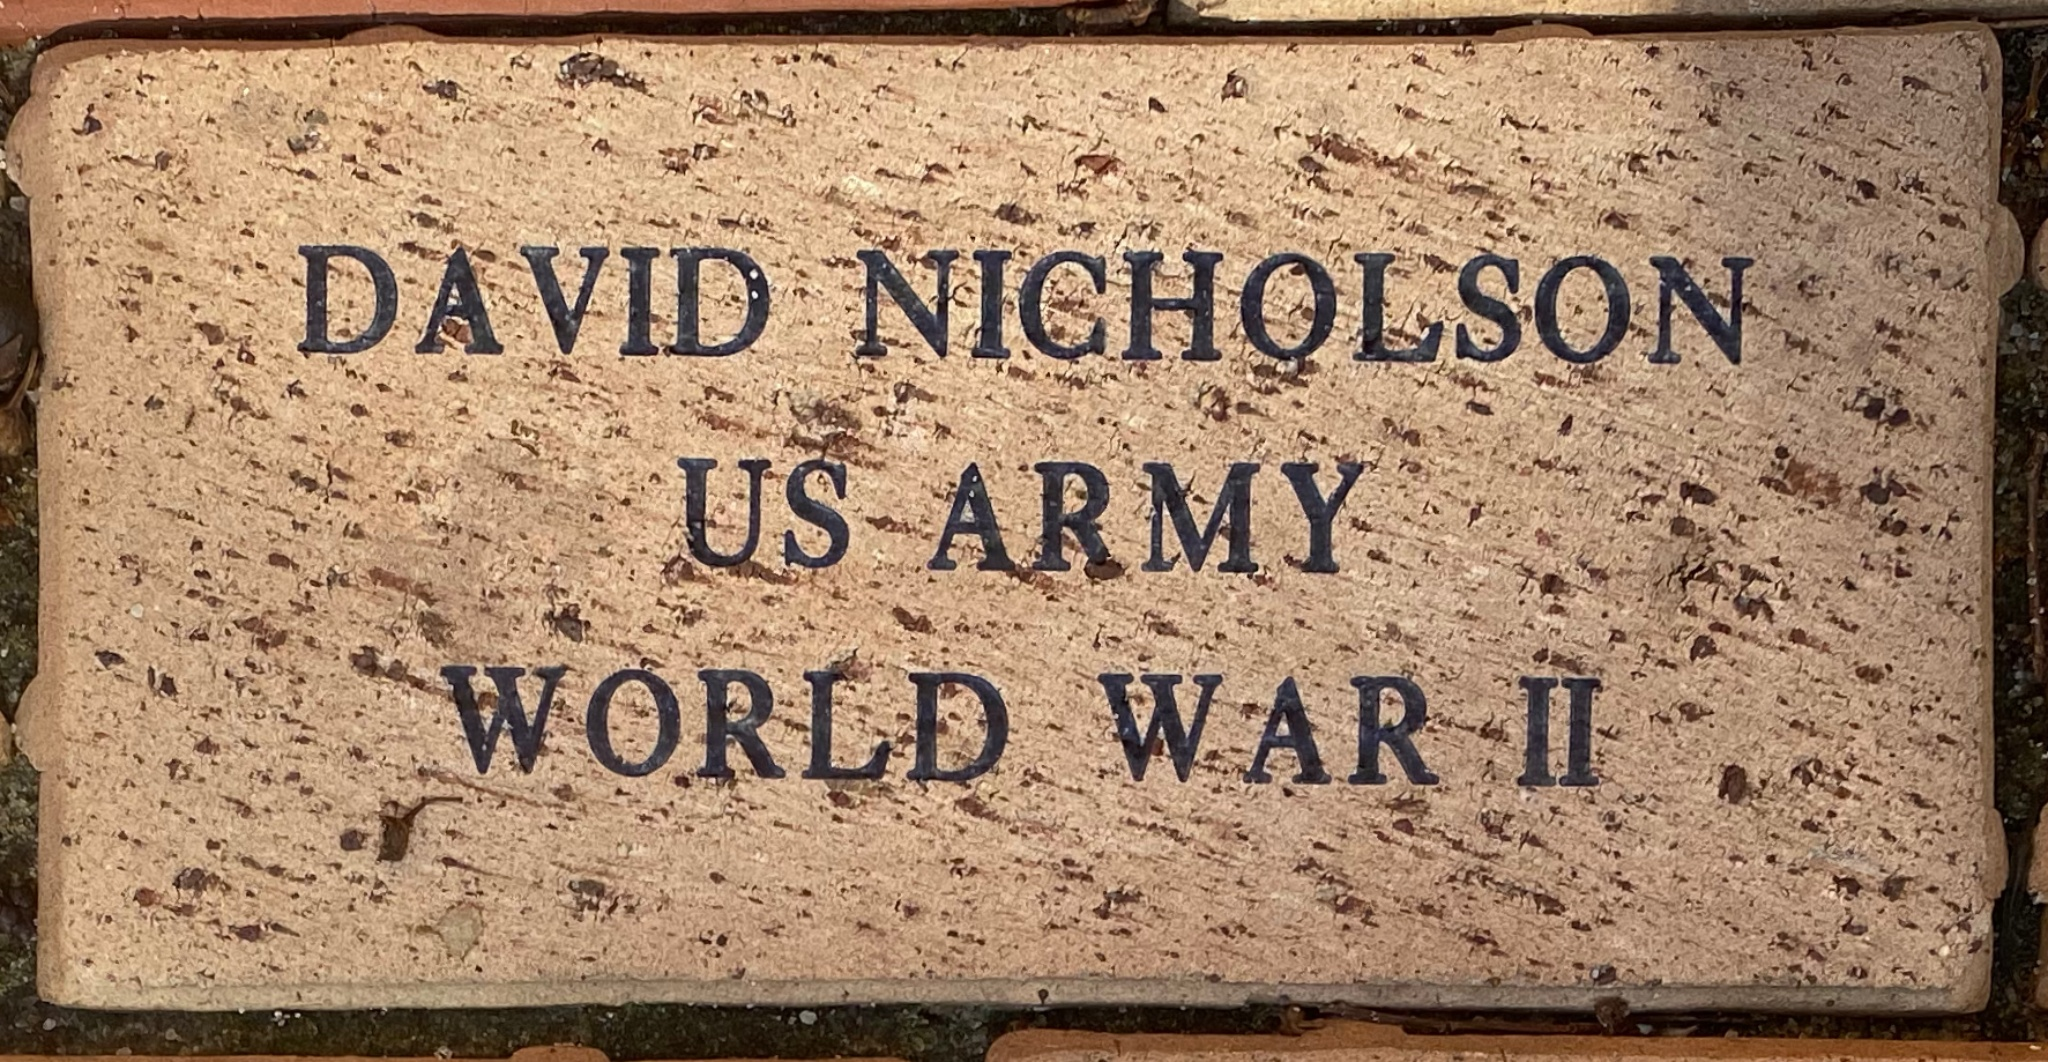 DAVID NICHOLSON US ARMY WORLD WAR II